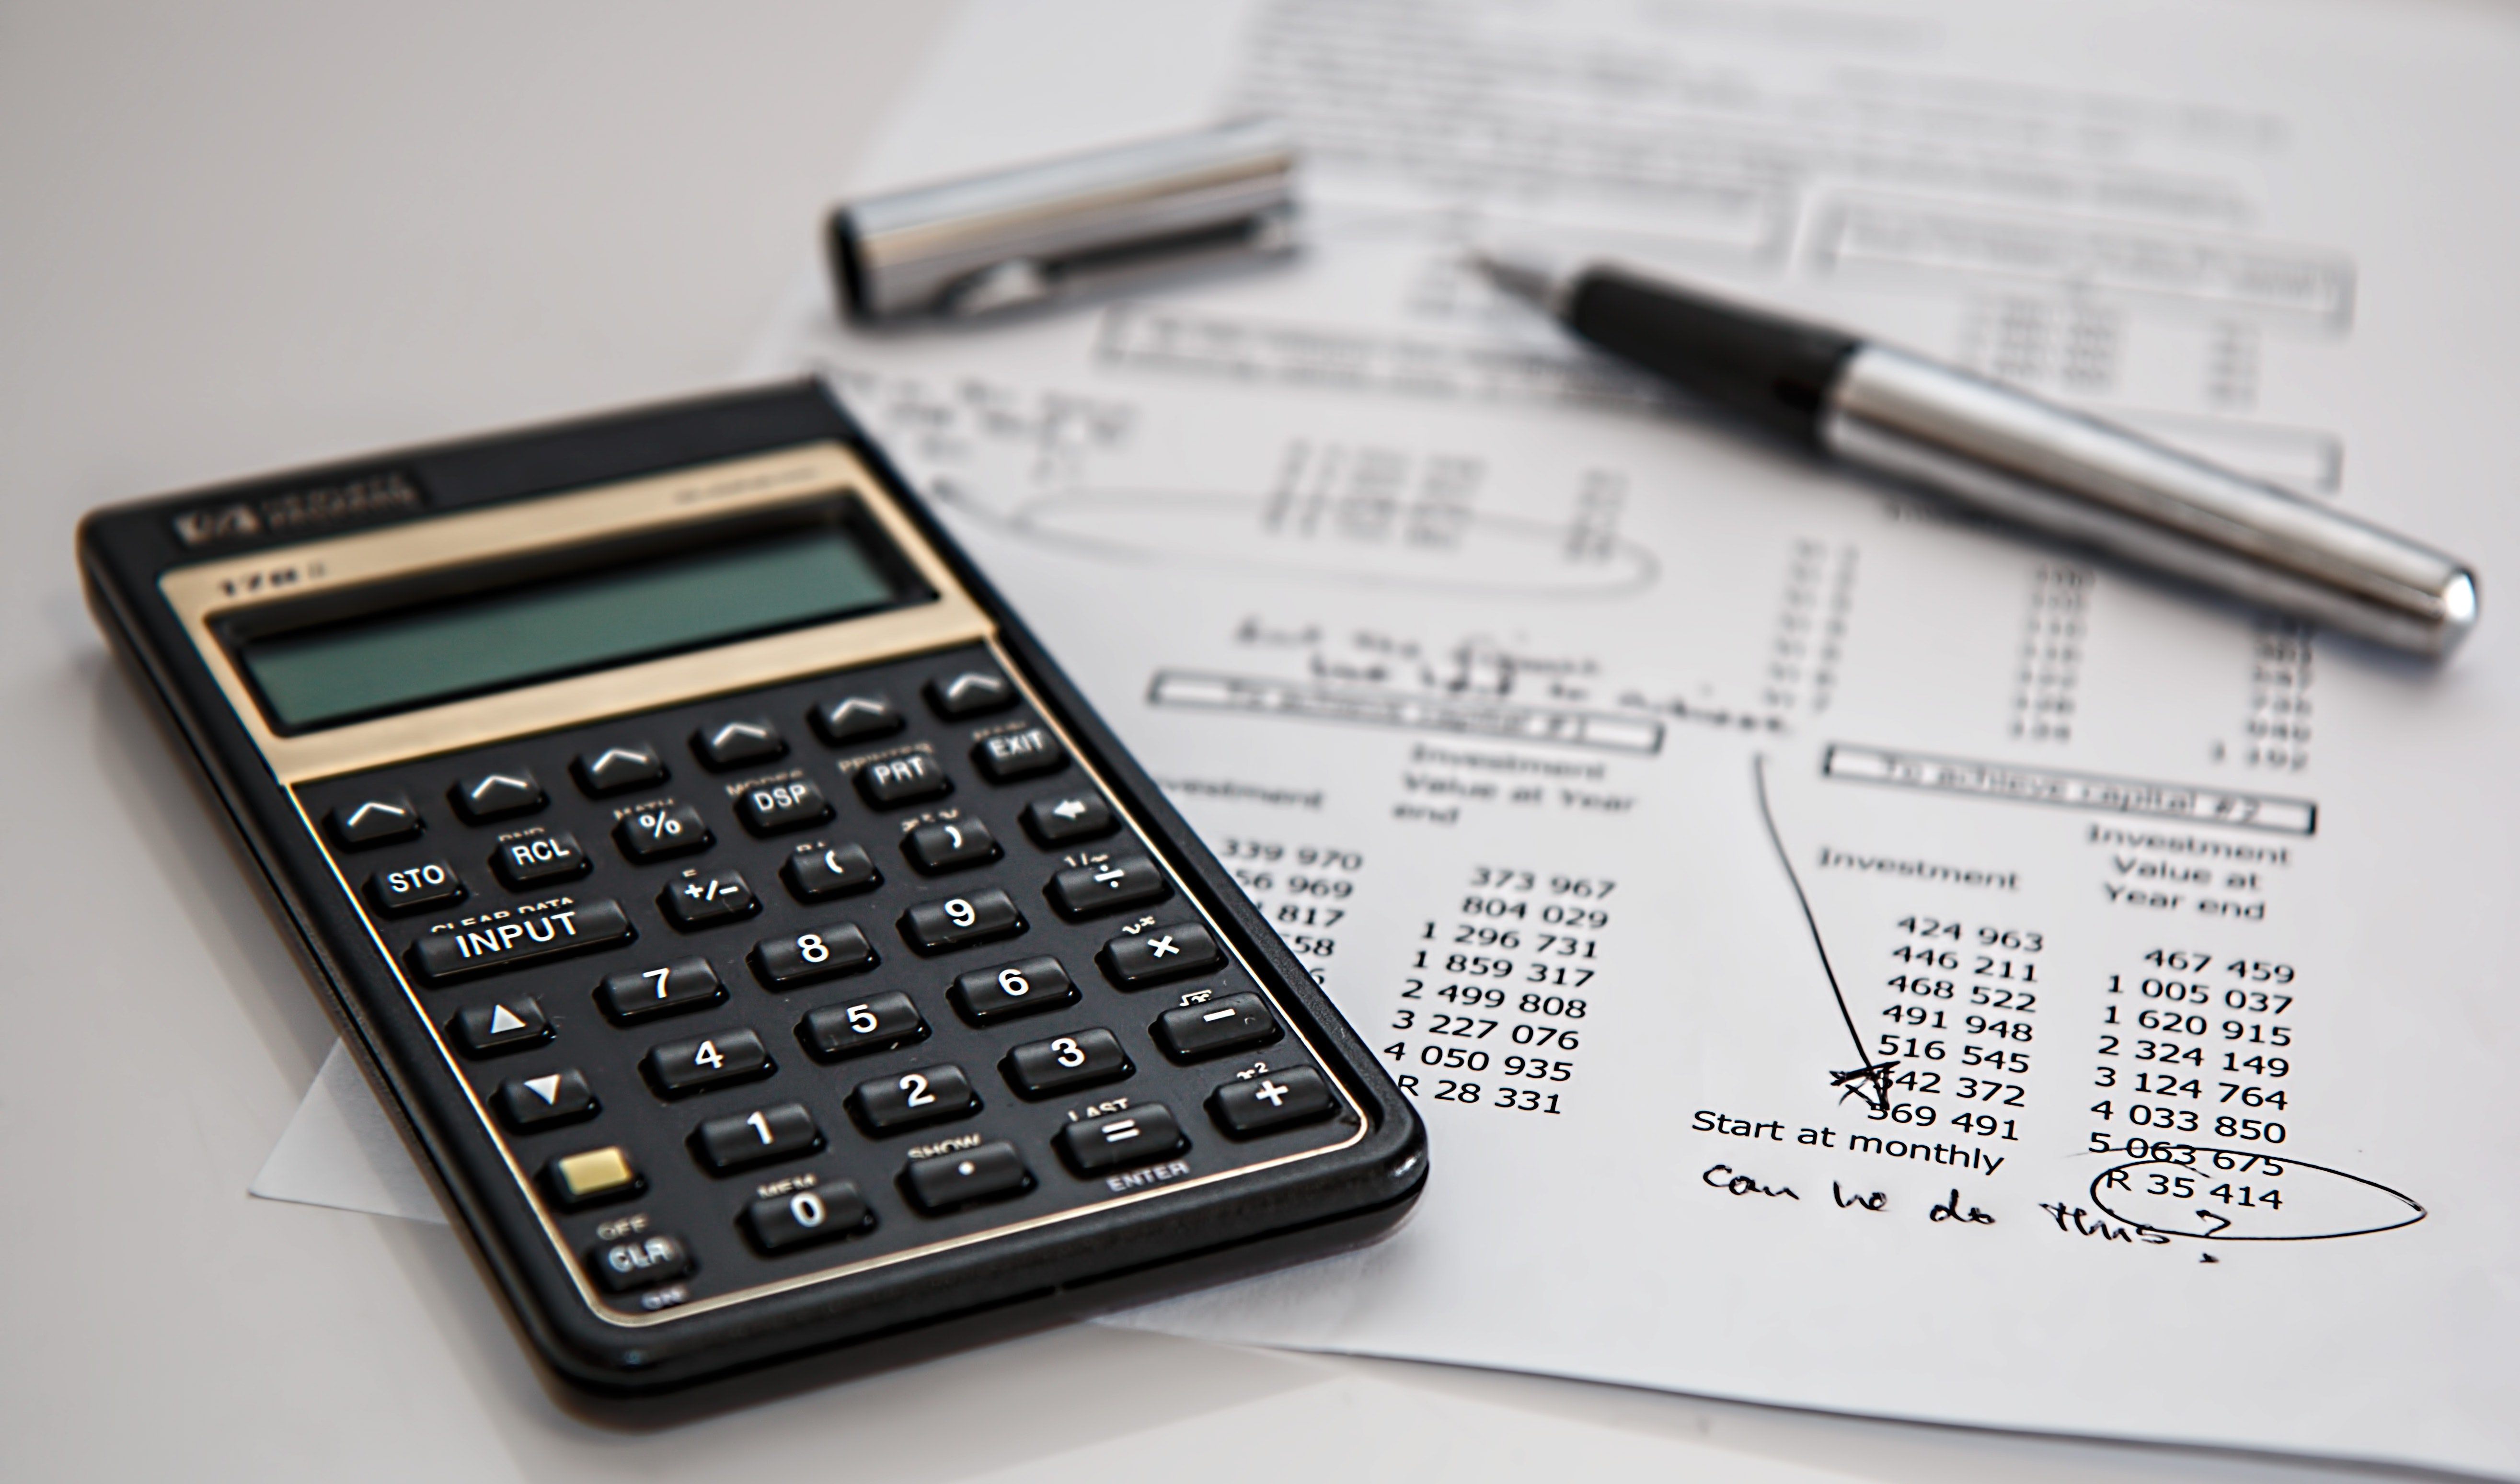 a calculator laid over financial documents